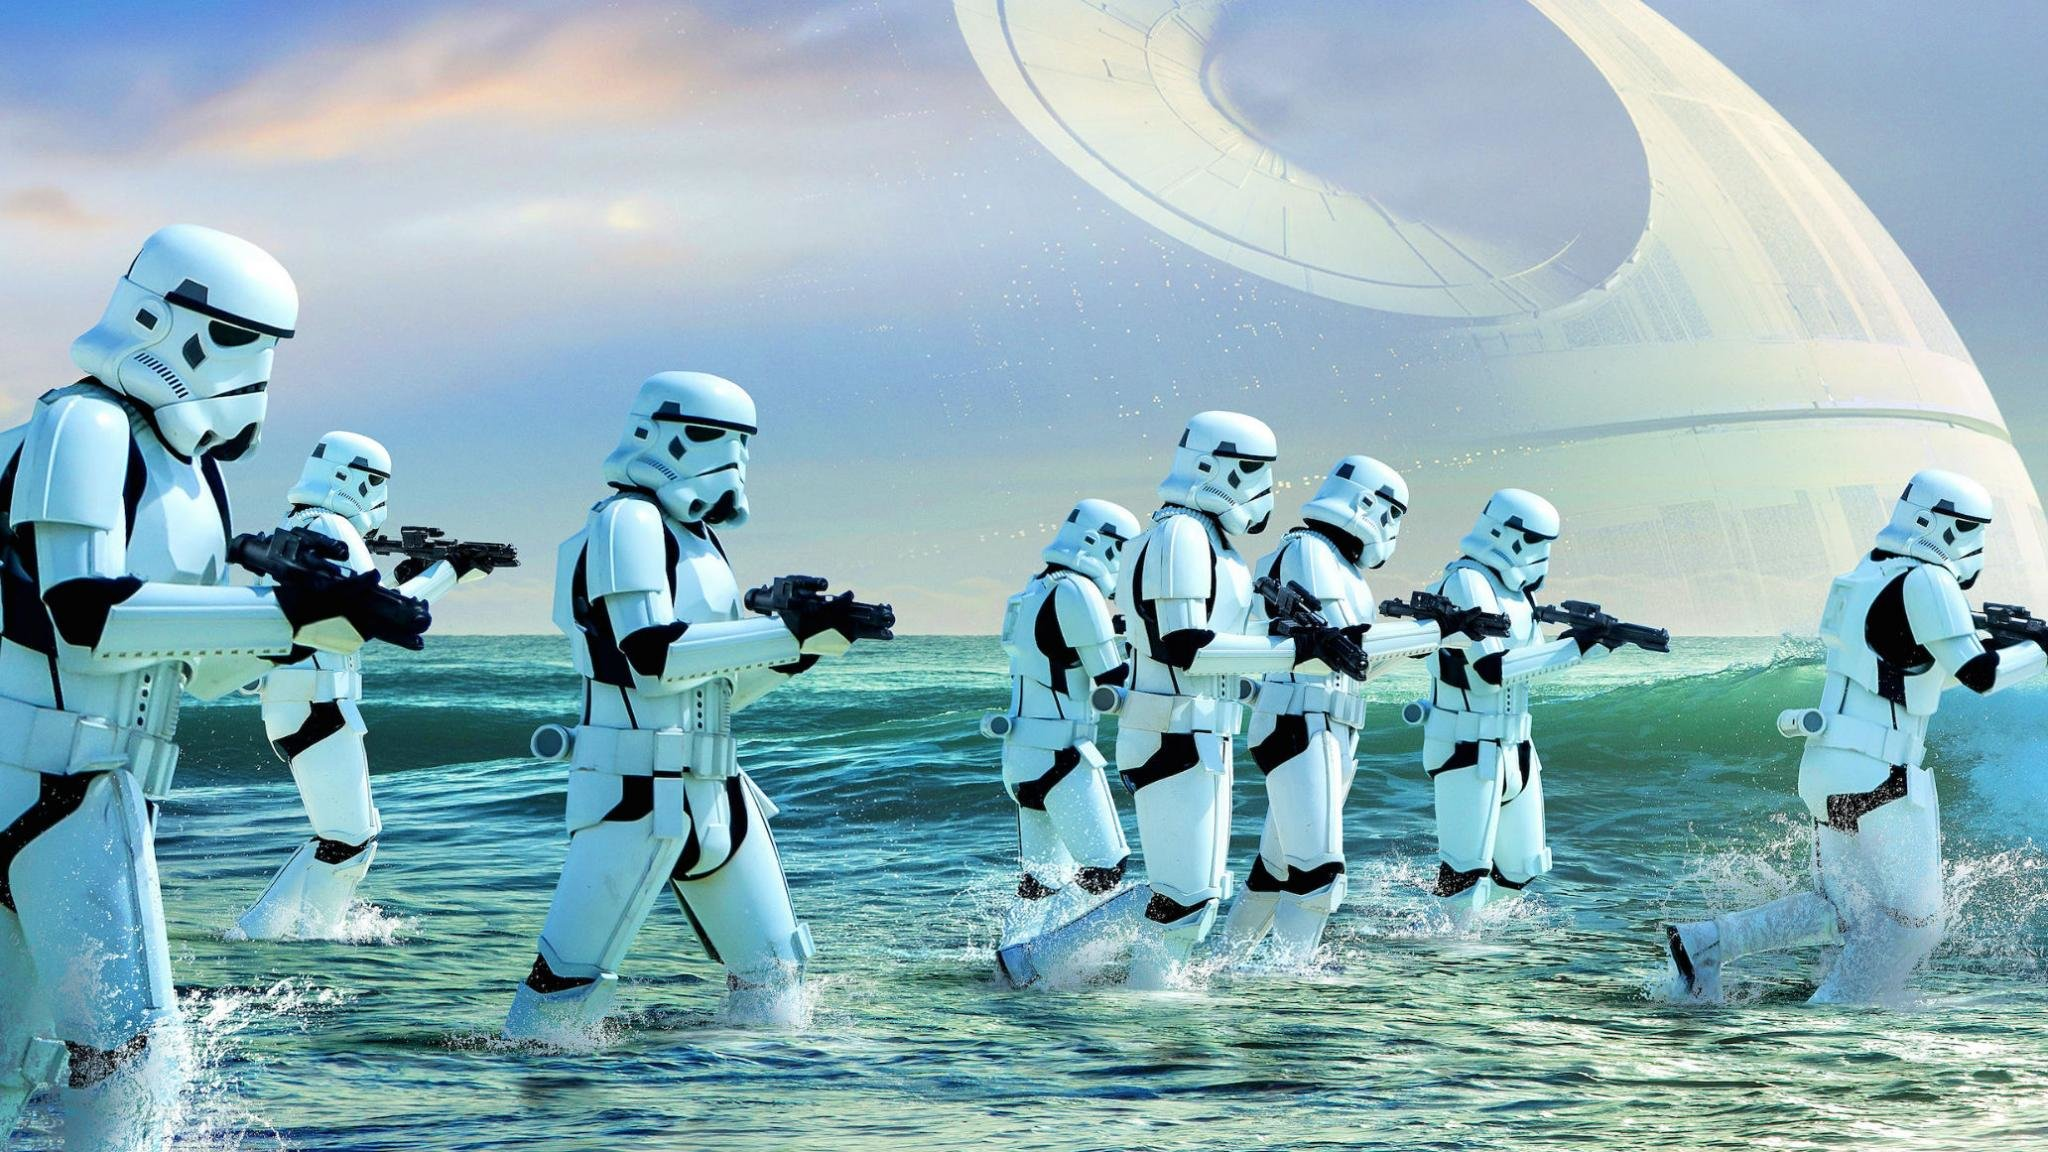 Free Download Rogue One A Star Wars Story Background Id 259617 Hd 2048x1152 For Desktop